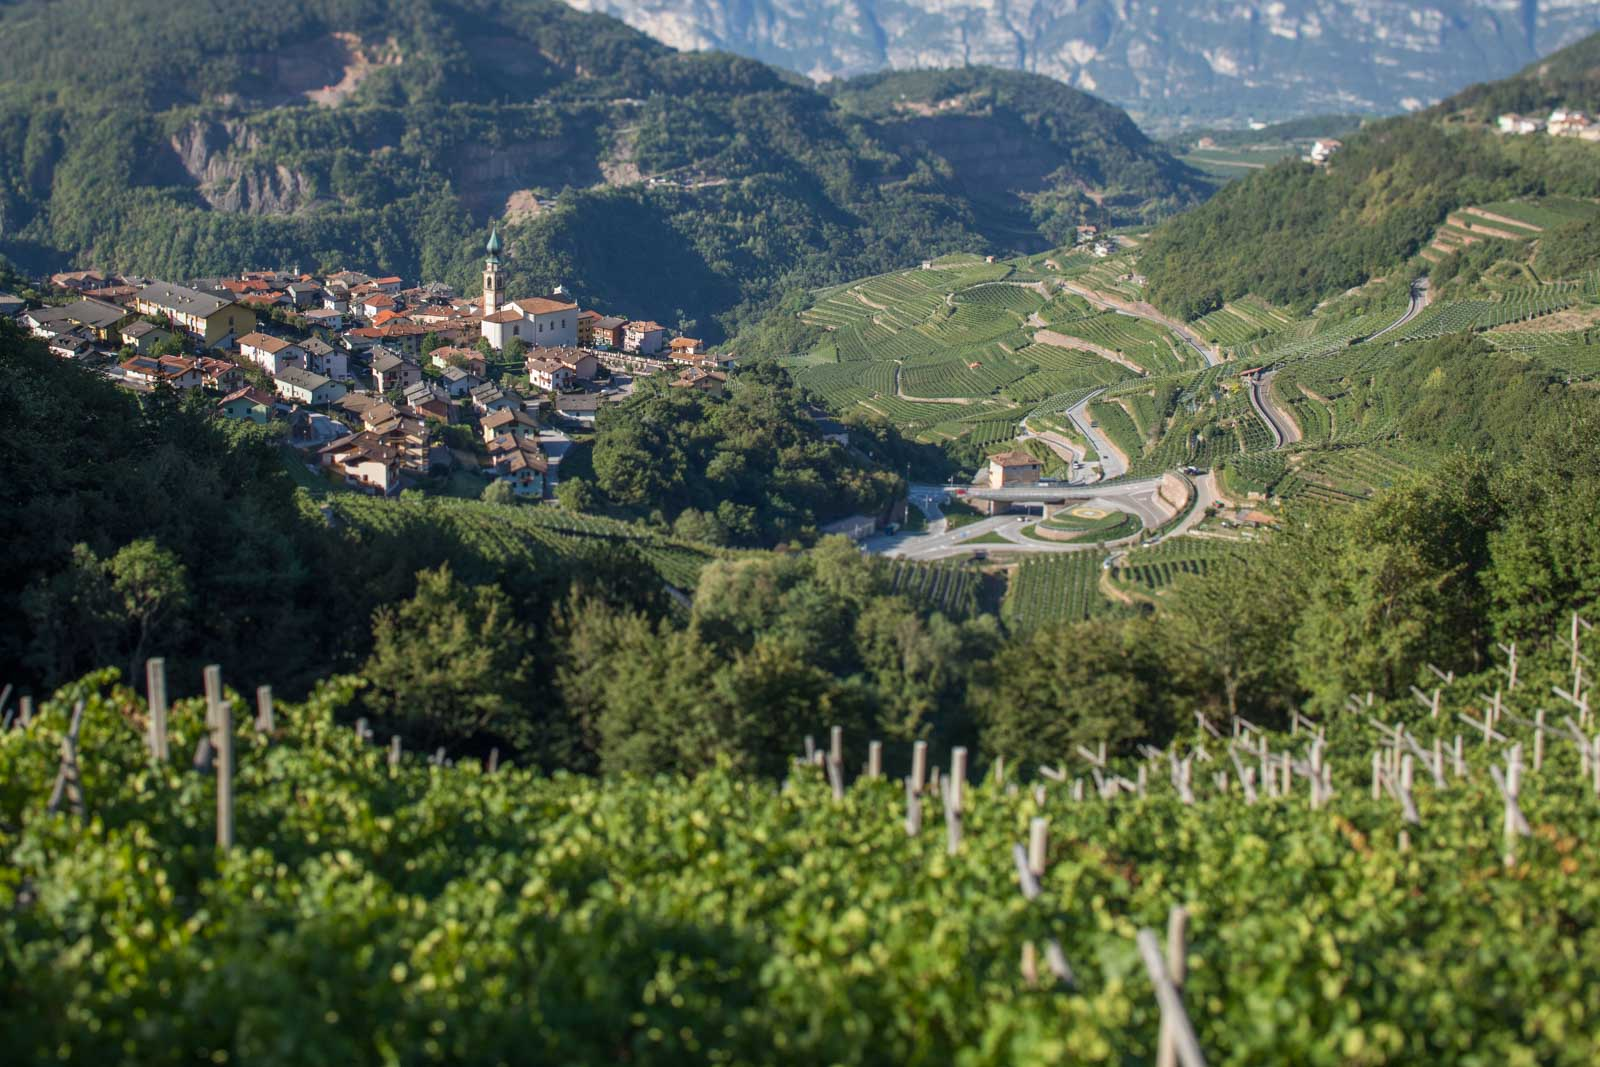 The village of Verla in the Val di Cembra, a spectacular valley decked in Chardonnay and Pinot Nero vines outside Trento. ©Kevin Day/Opening a Bottle